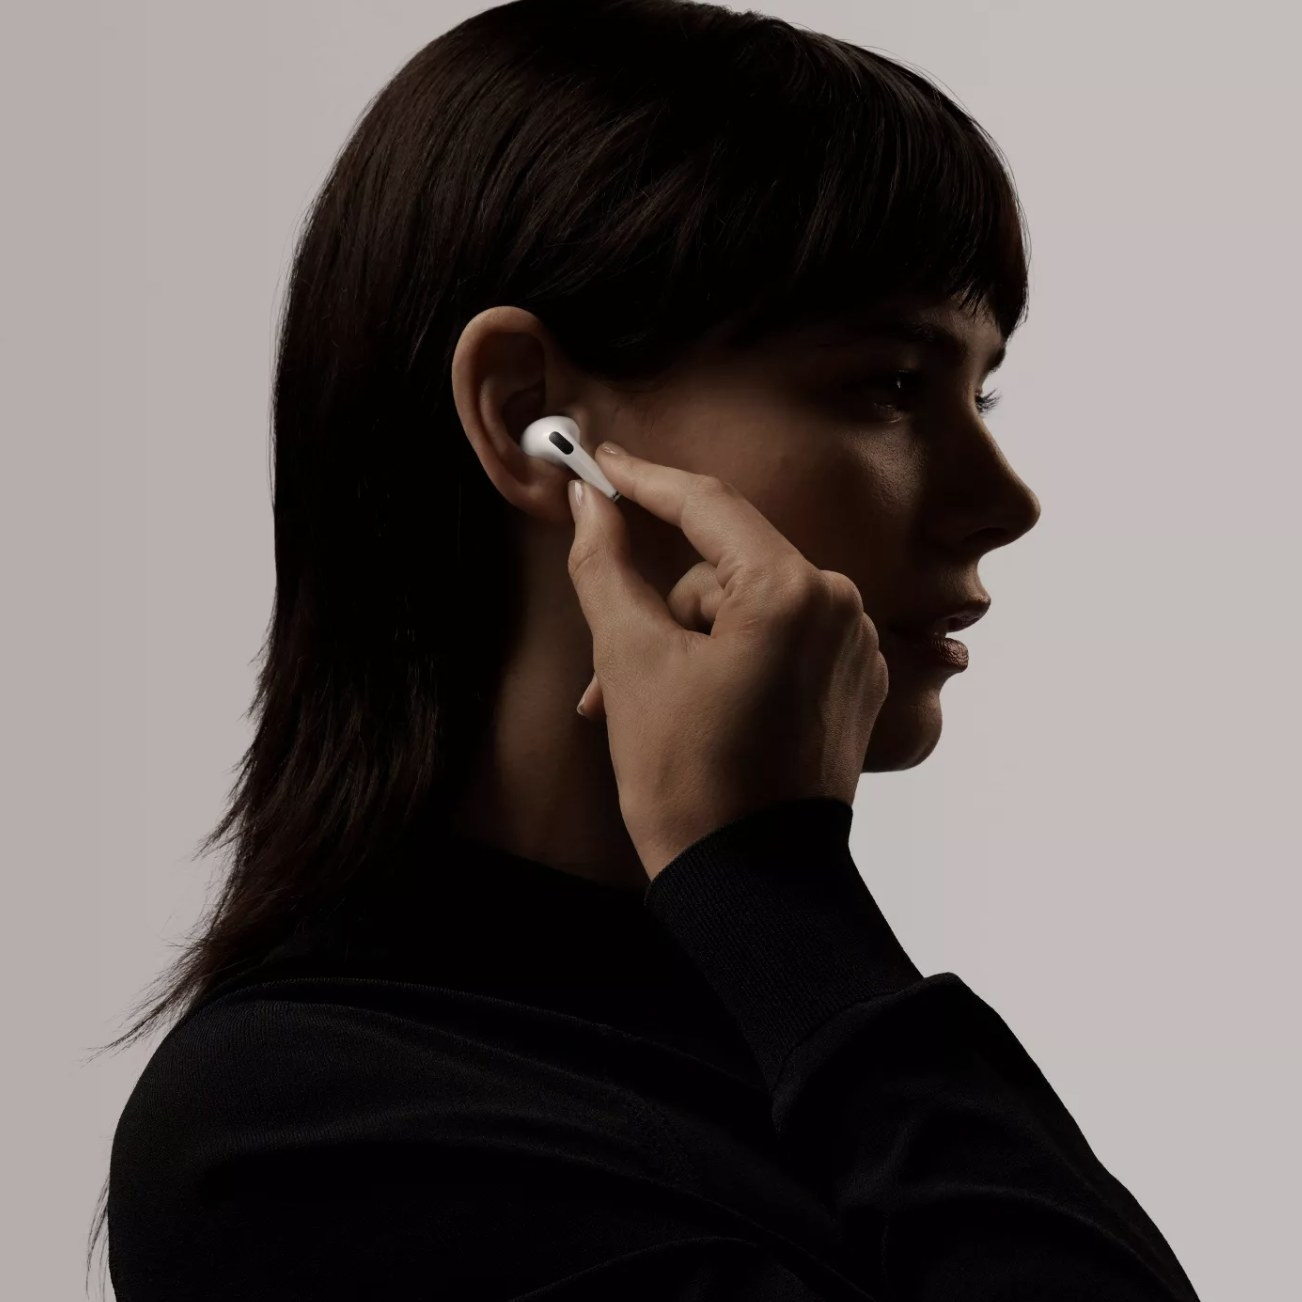 A person wearing an Apple AirPod